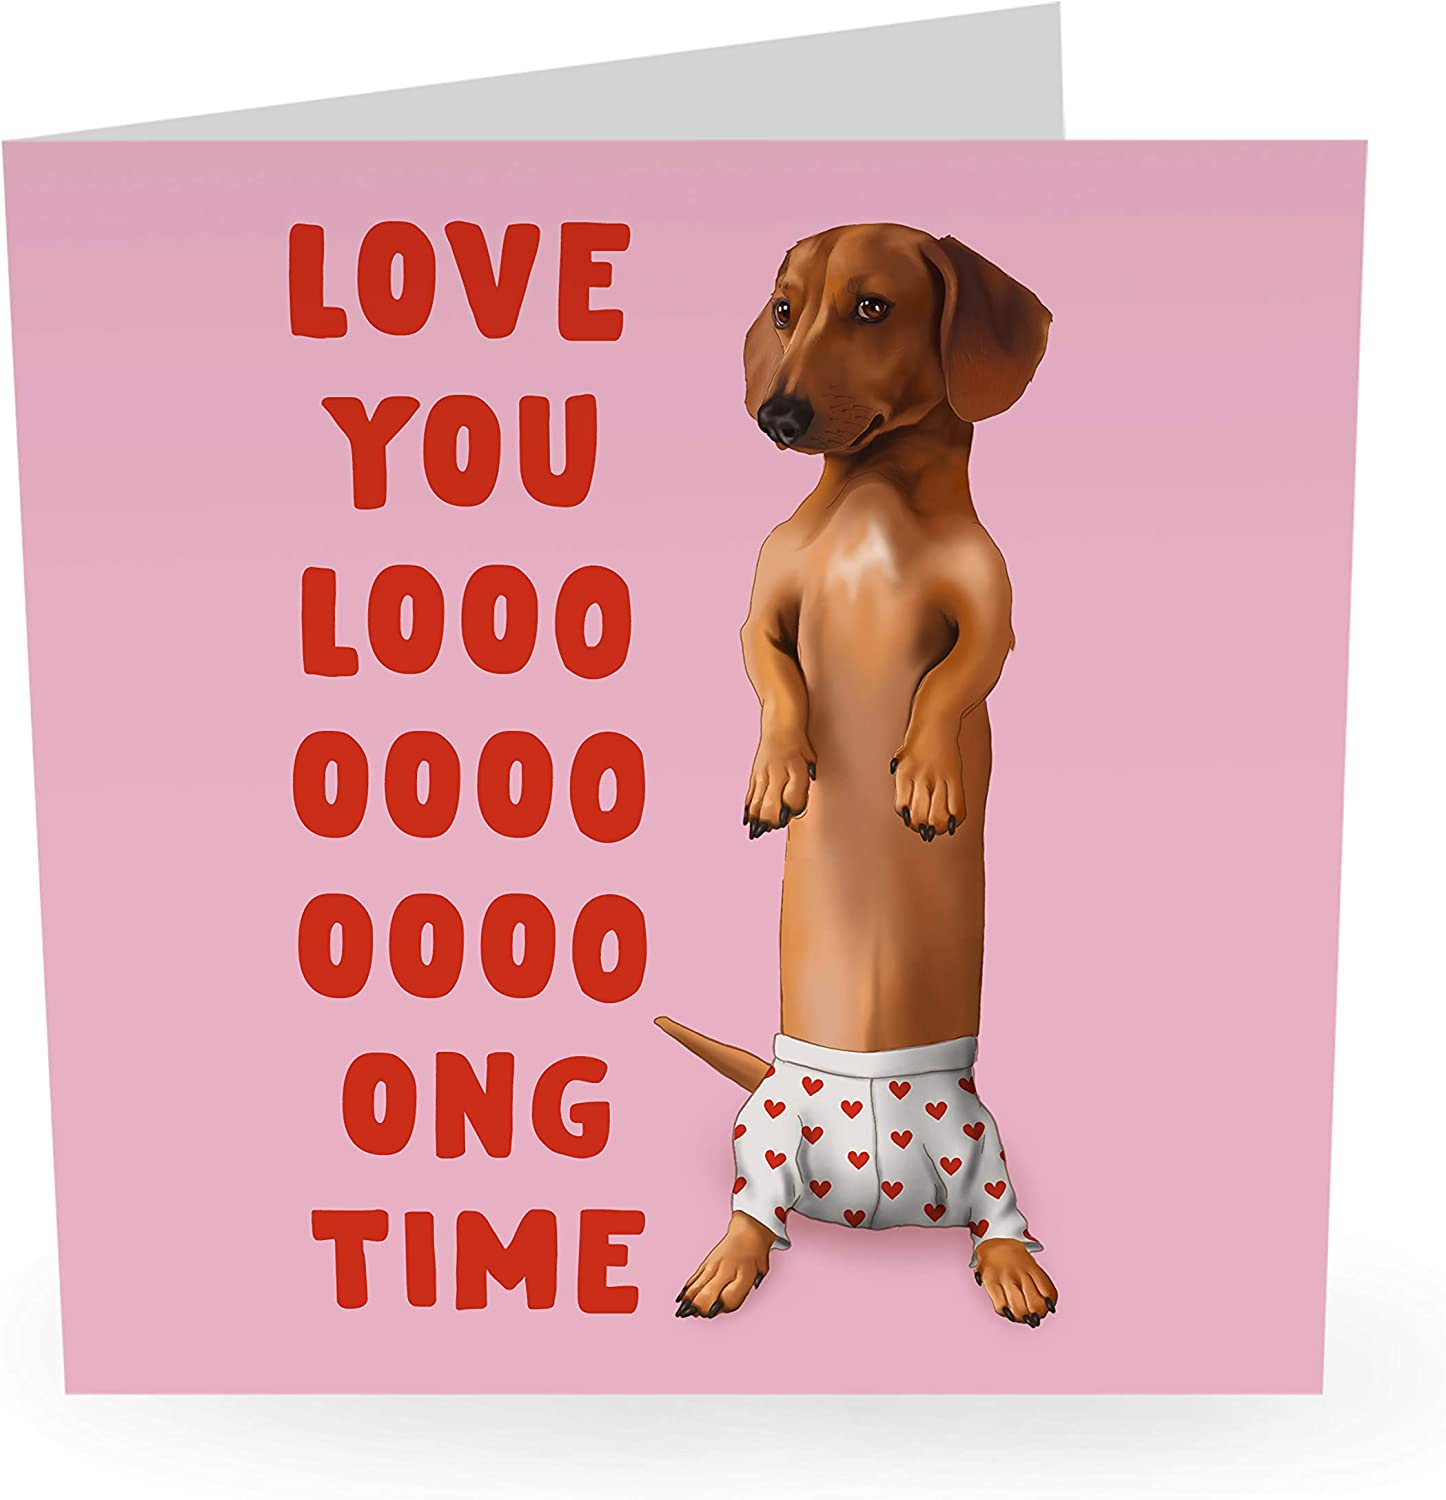 "Cute Anniversary Card Love Relationship Card Dog Pun /""Love You Long Time/"" Central 23 Husband Wife Girlfriend Boyfriend Comes with Fun Stickers"